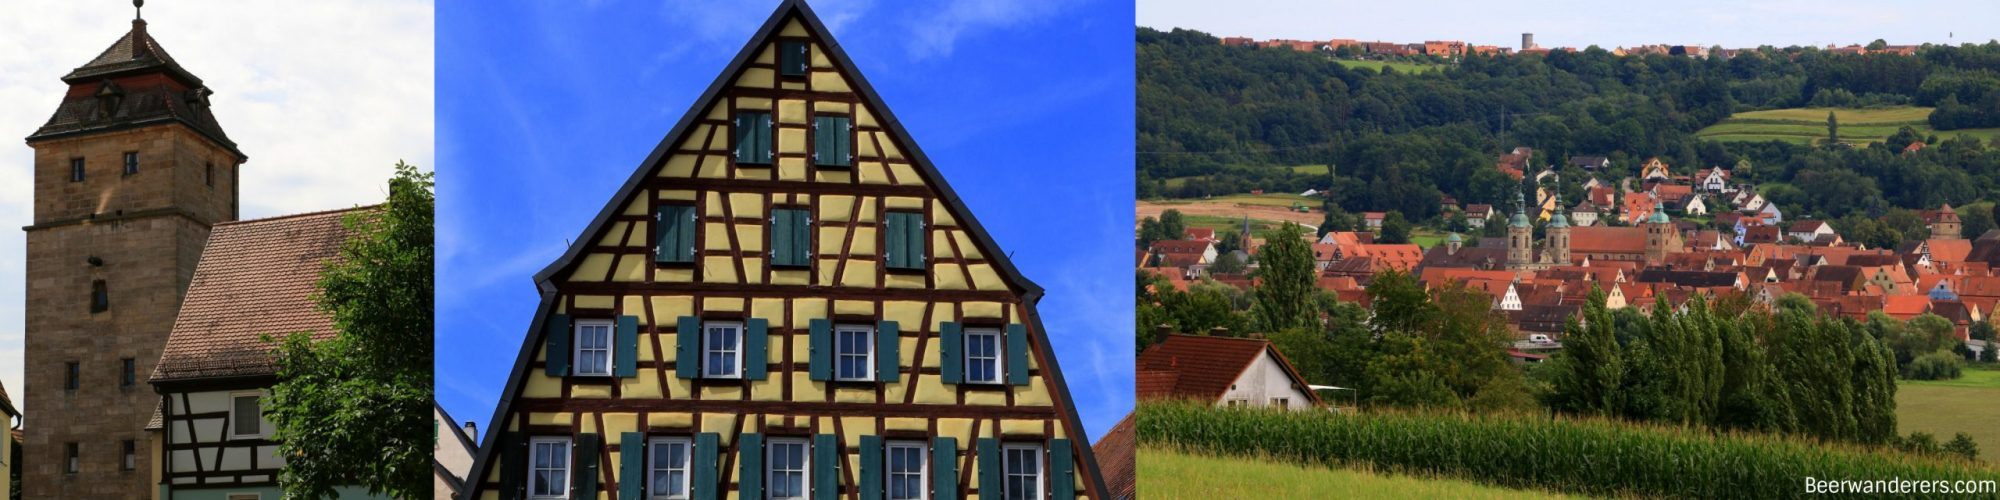 town gate, half-timbered house, view of old town from distance